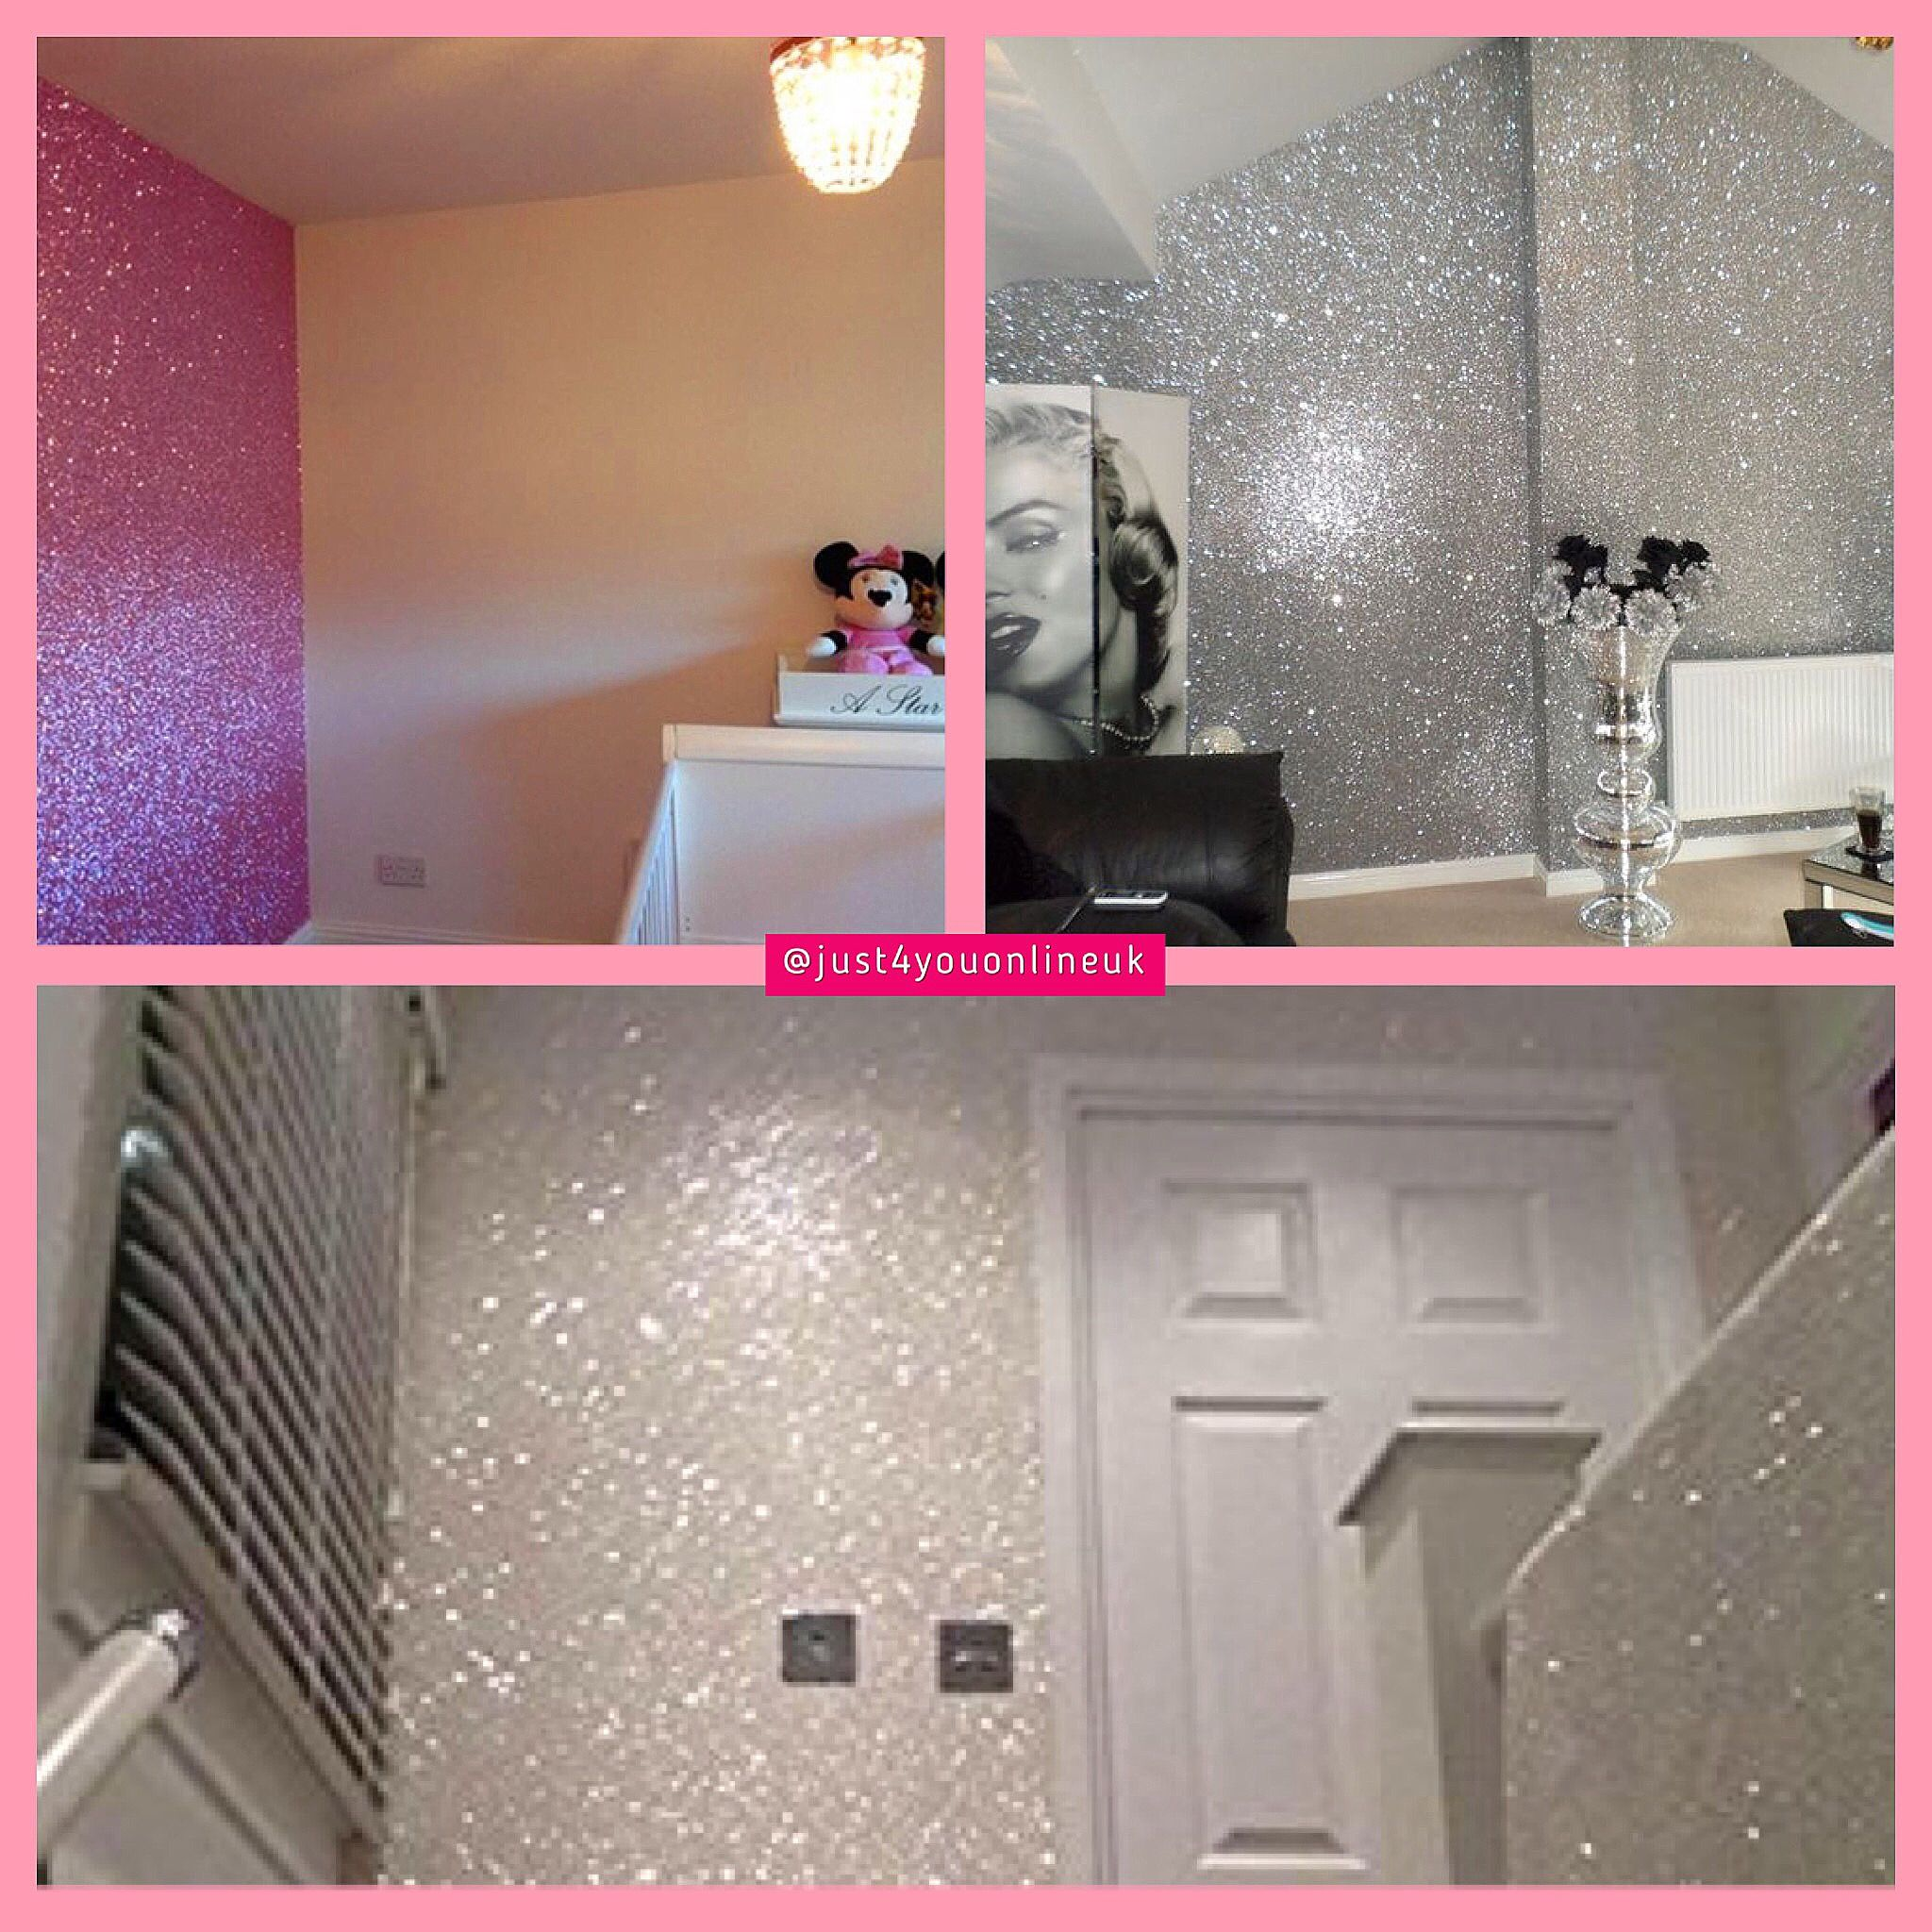 We are launching our brand new Glitter Wallpaper tomorrow night 05